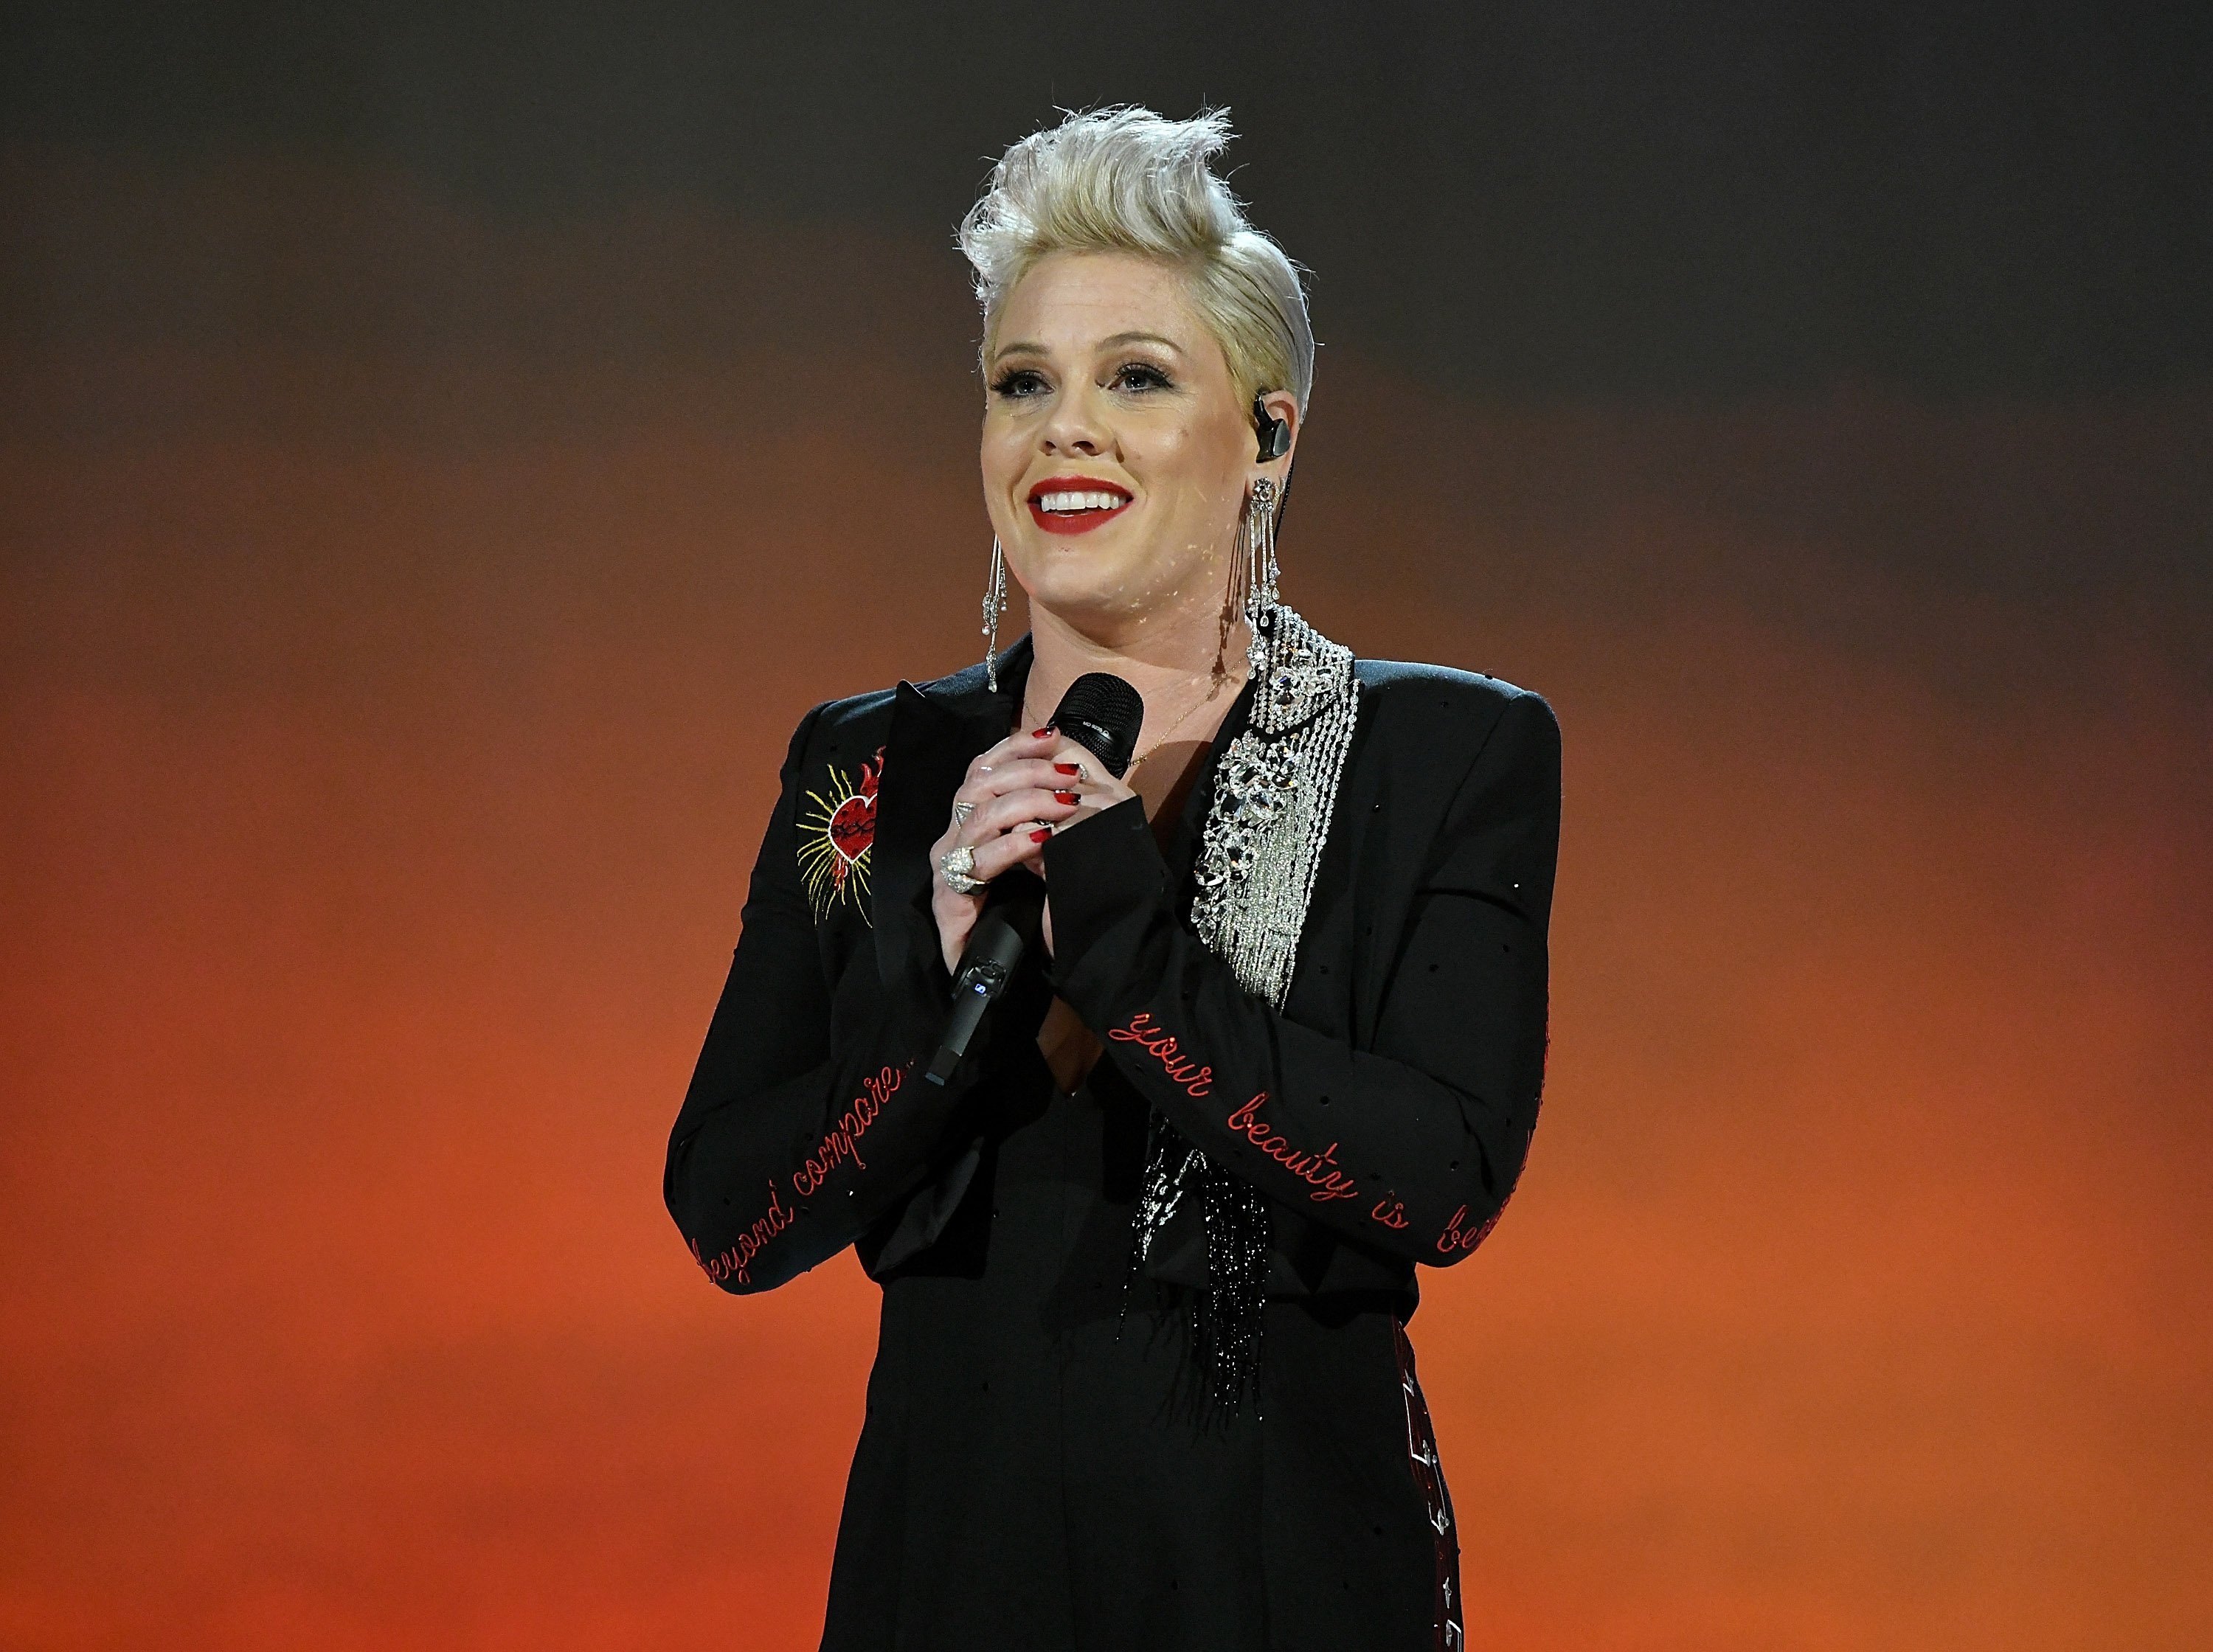 P!nk performs onstage at MusiCares Person of the Year honoring Dolly Parton at Los Angeles Convention Center on February 8, 2019 in Los Angeles, California | Photo: Getty Images